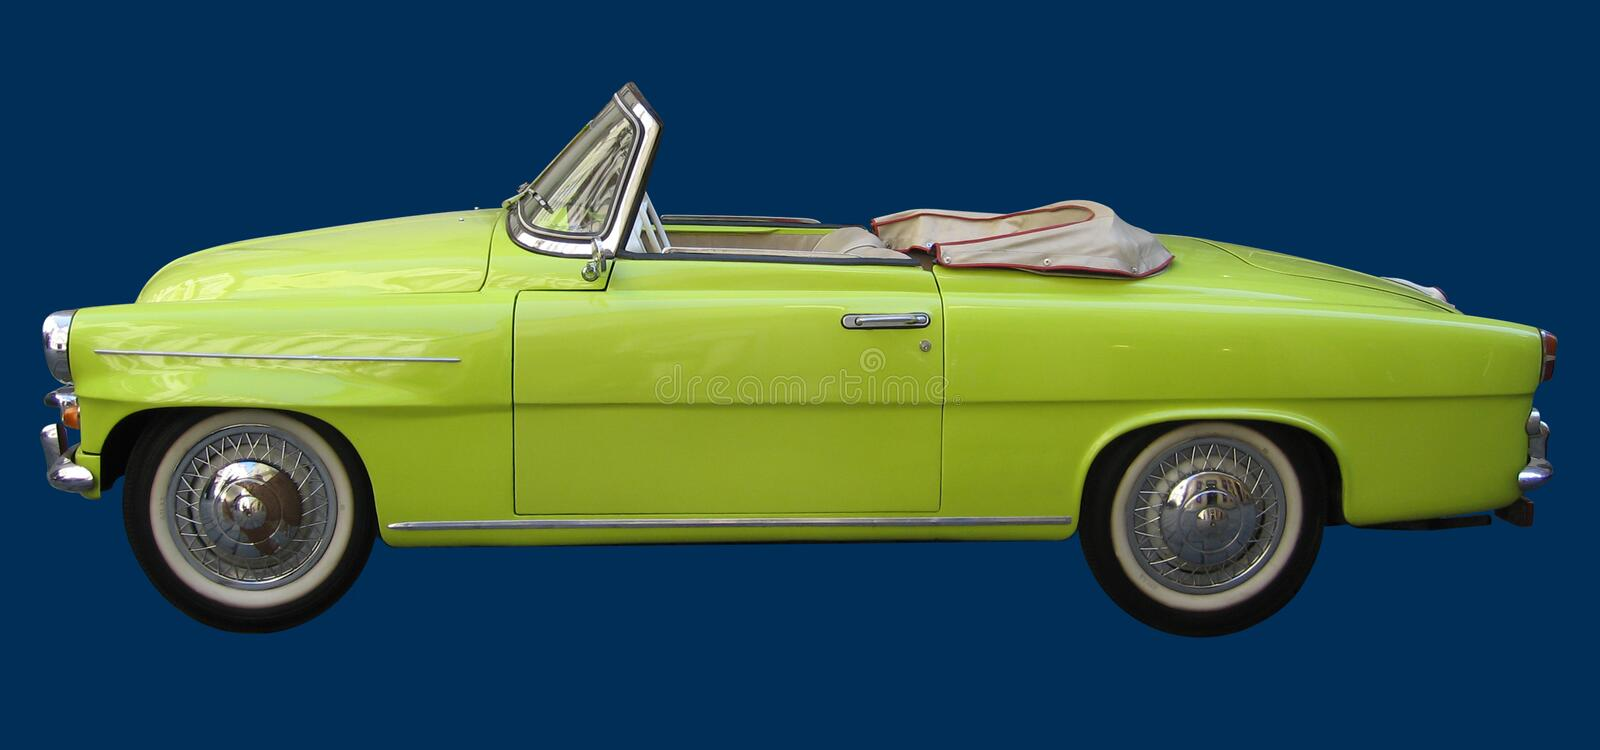 Lime Car royalty free stock image